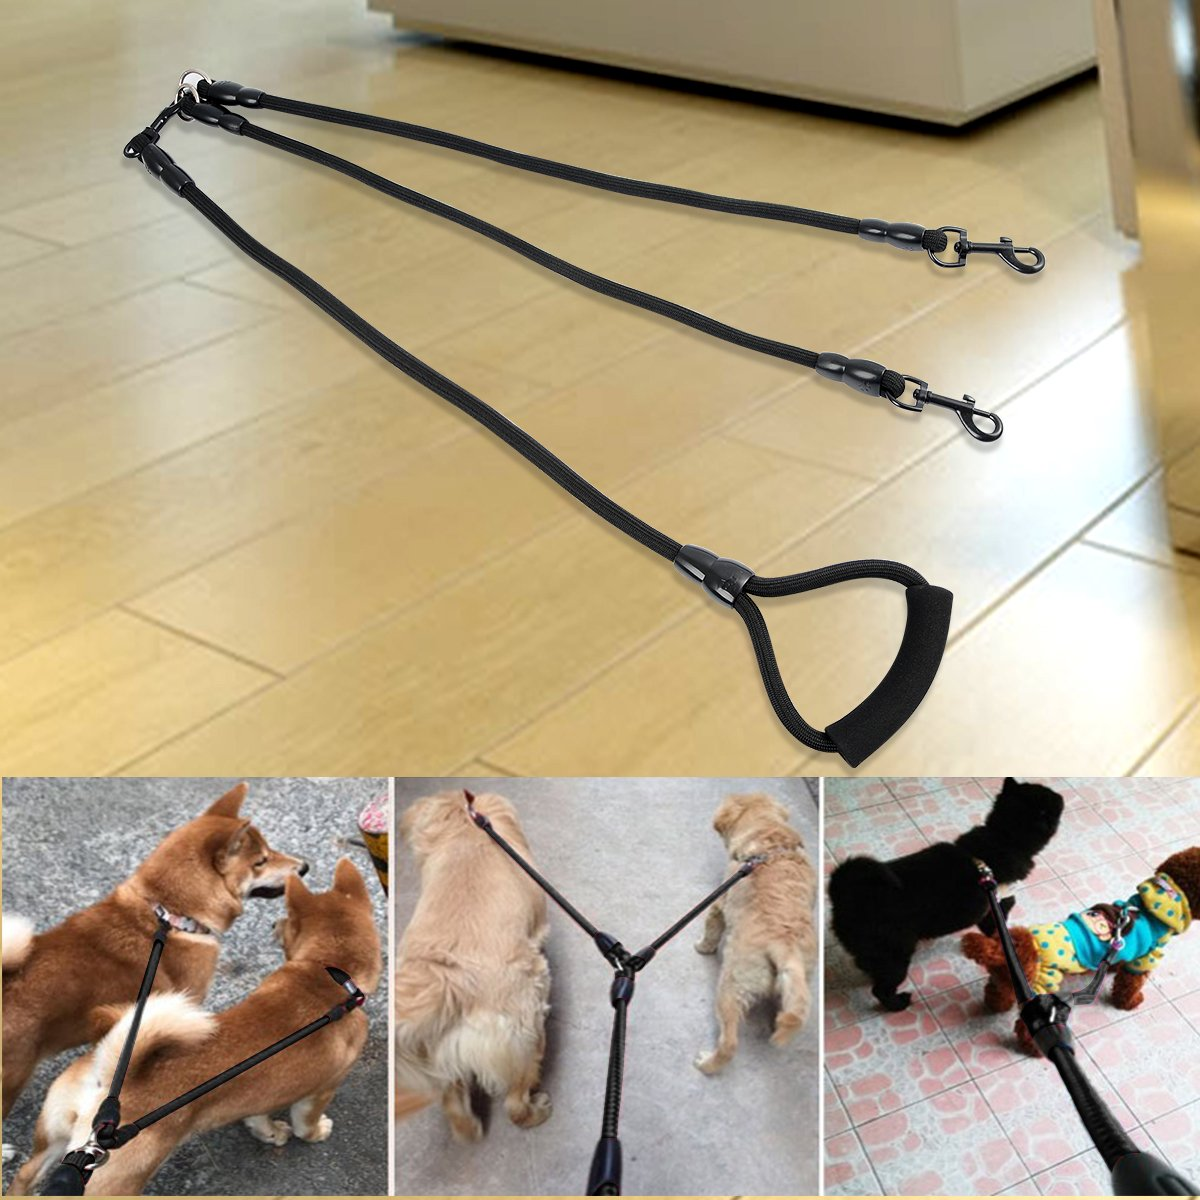 JETESUN Dual Double Dog Leash No Tangle Padded Handle 360 Swivel Two Small/Medium/Large Dogs (Double Dog) by JETESUN (Image #6)